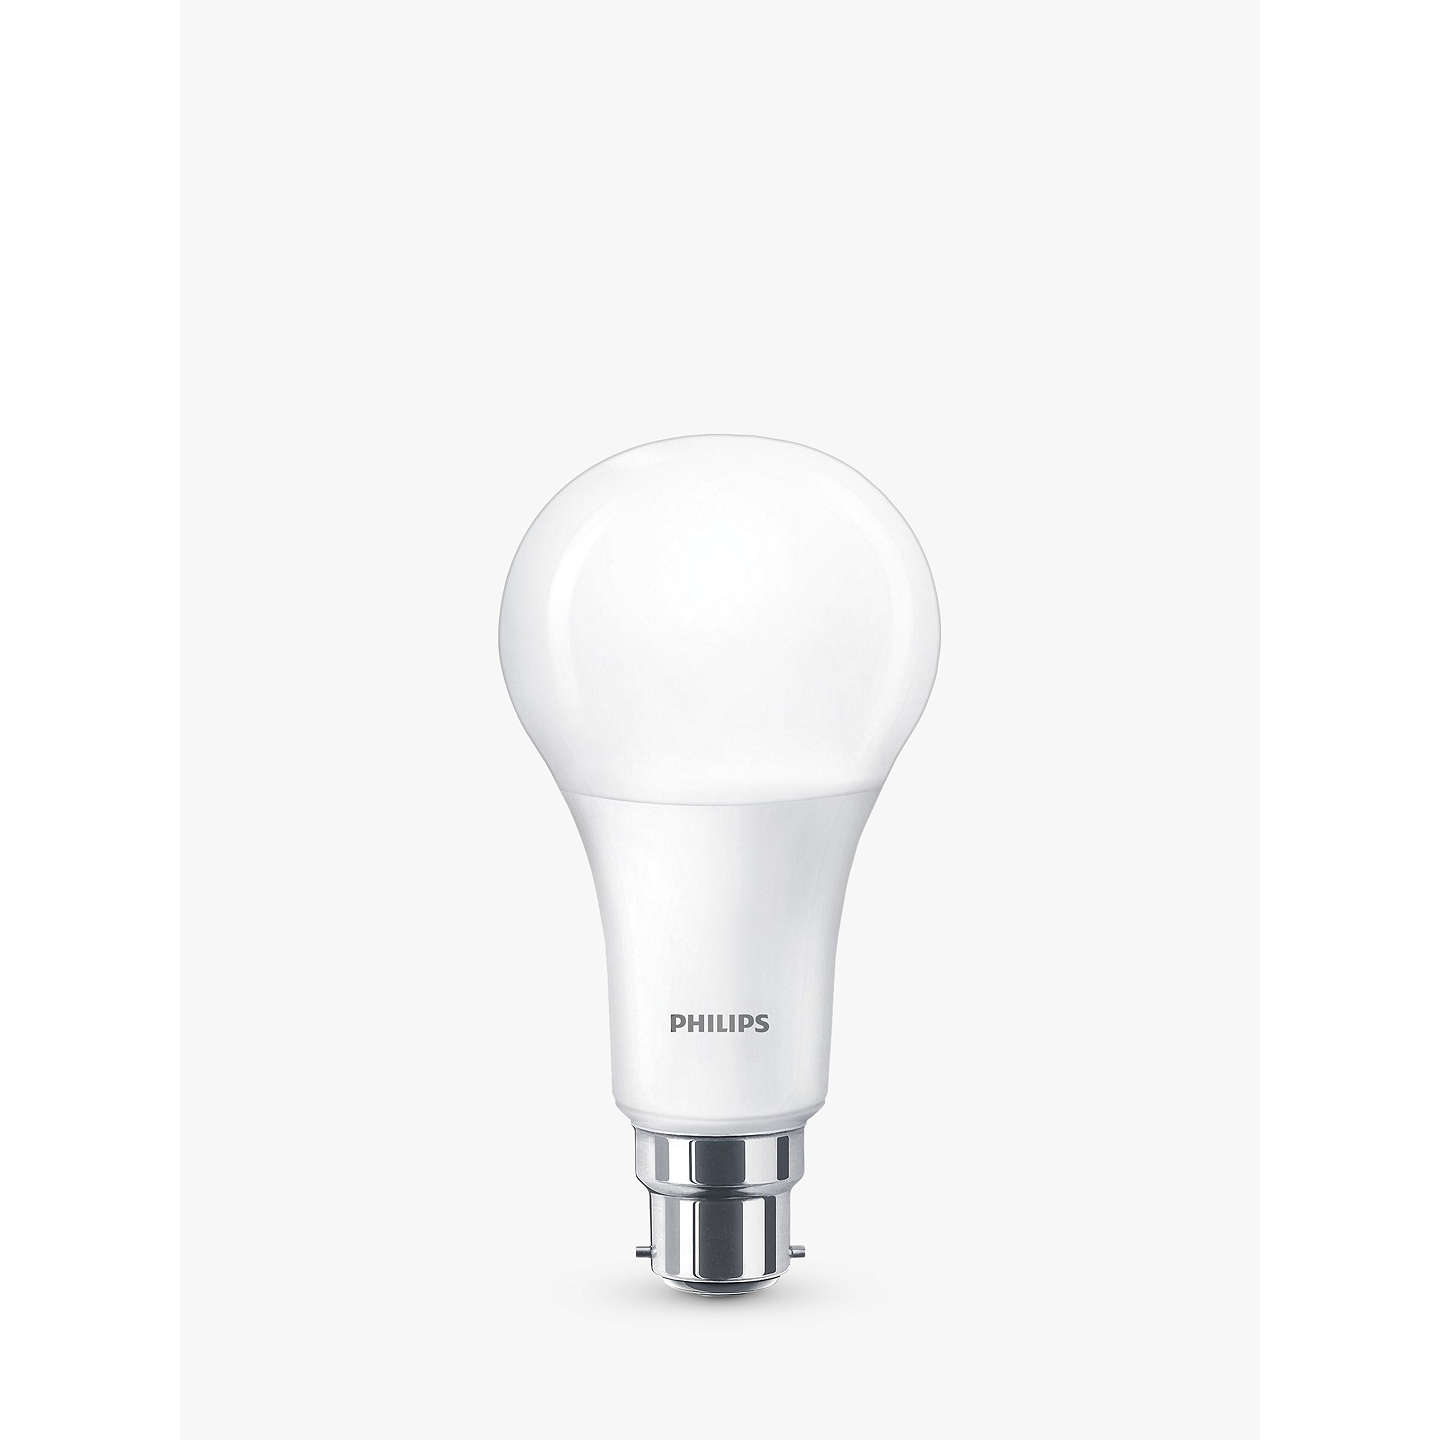 Philips 13.5W BC LED Bulb, Warm Glow, Dimmable at John Lewis